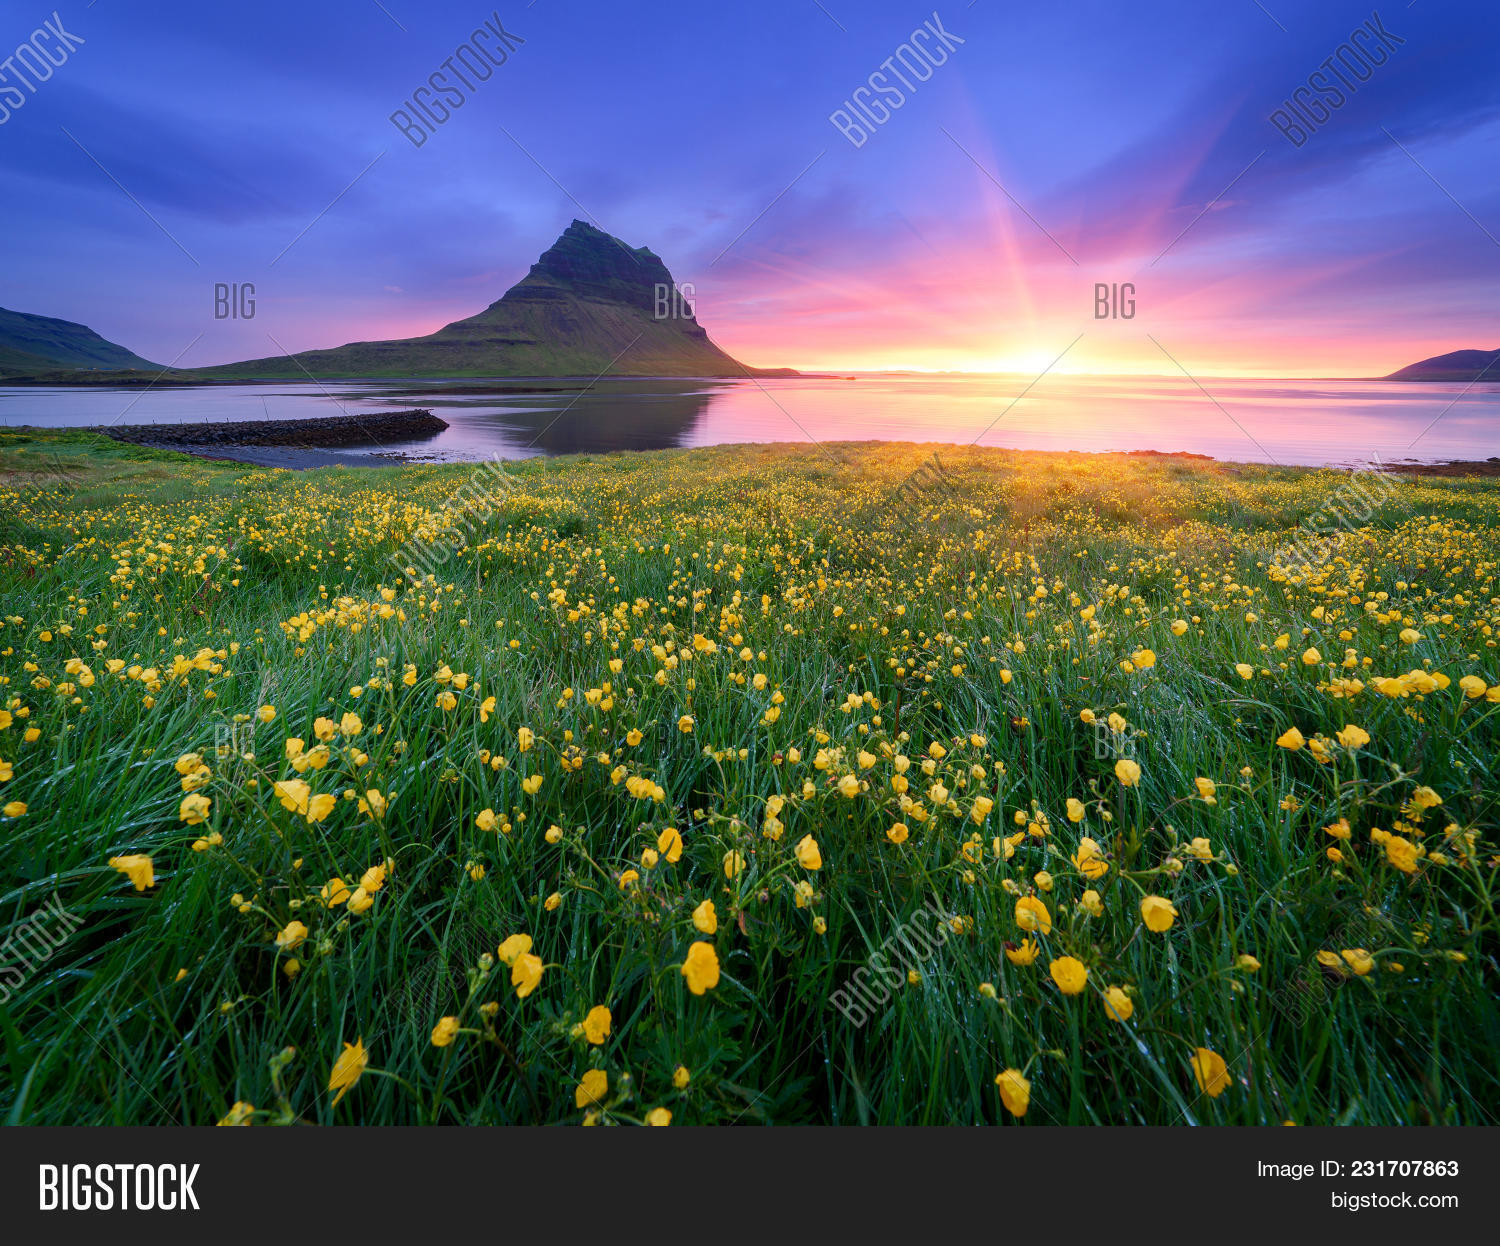 Landscape beautiful image photo free trial bigstock landscape with a beautiful sunrise and the mountain yellow flowers in the lush grass in izmirmasajfo